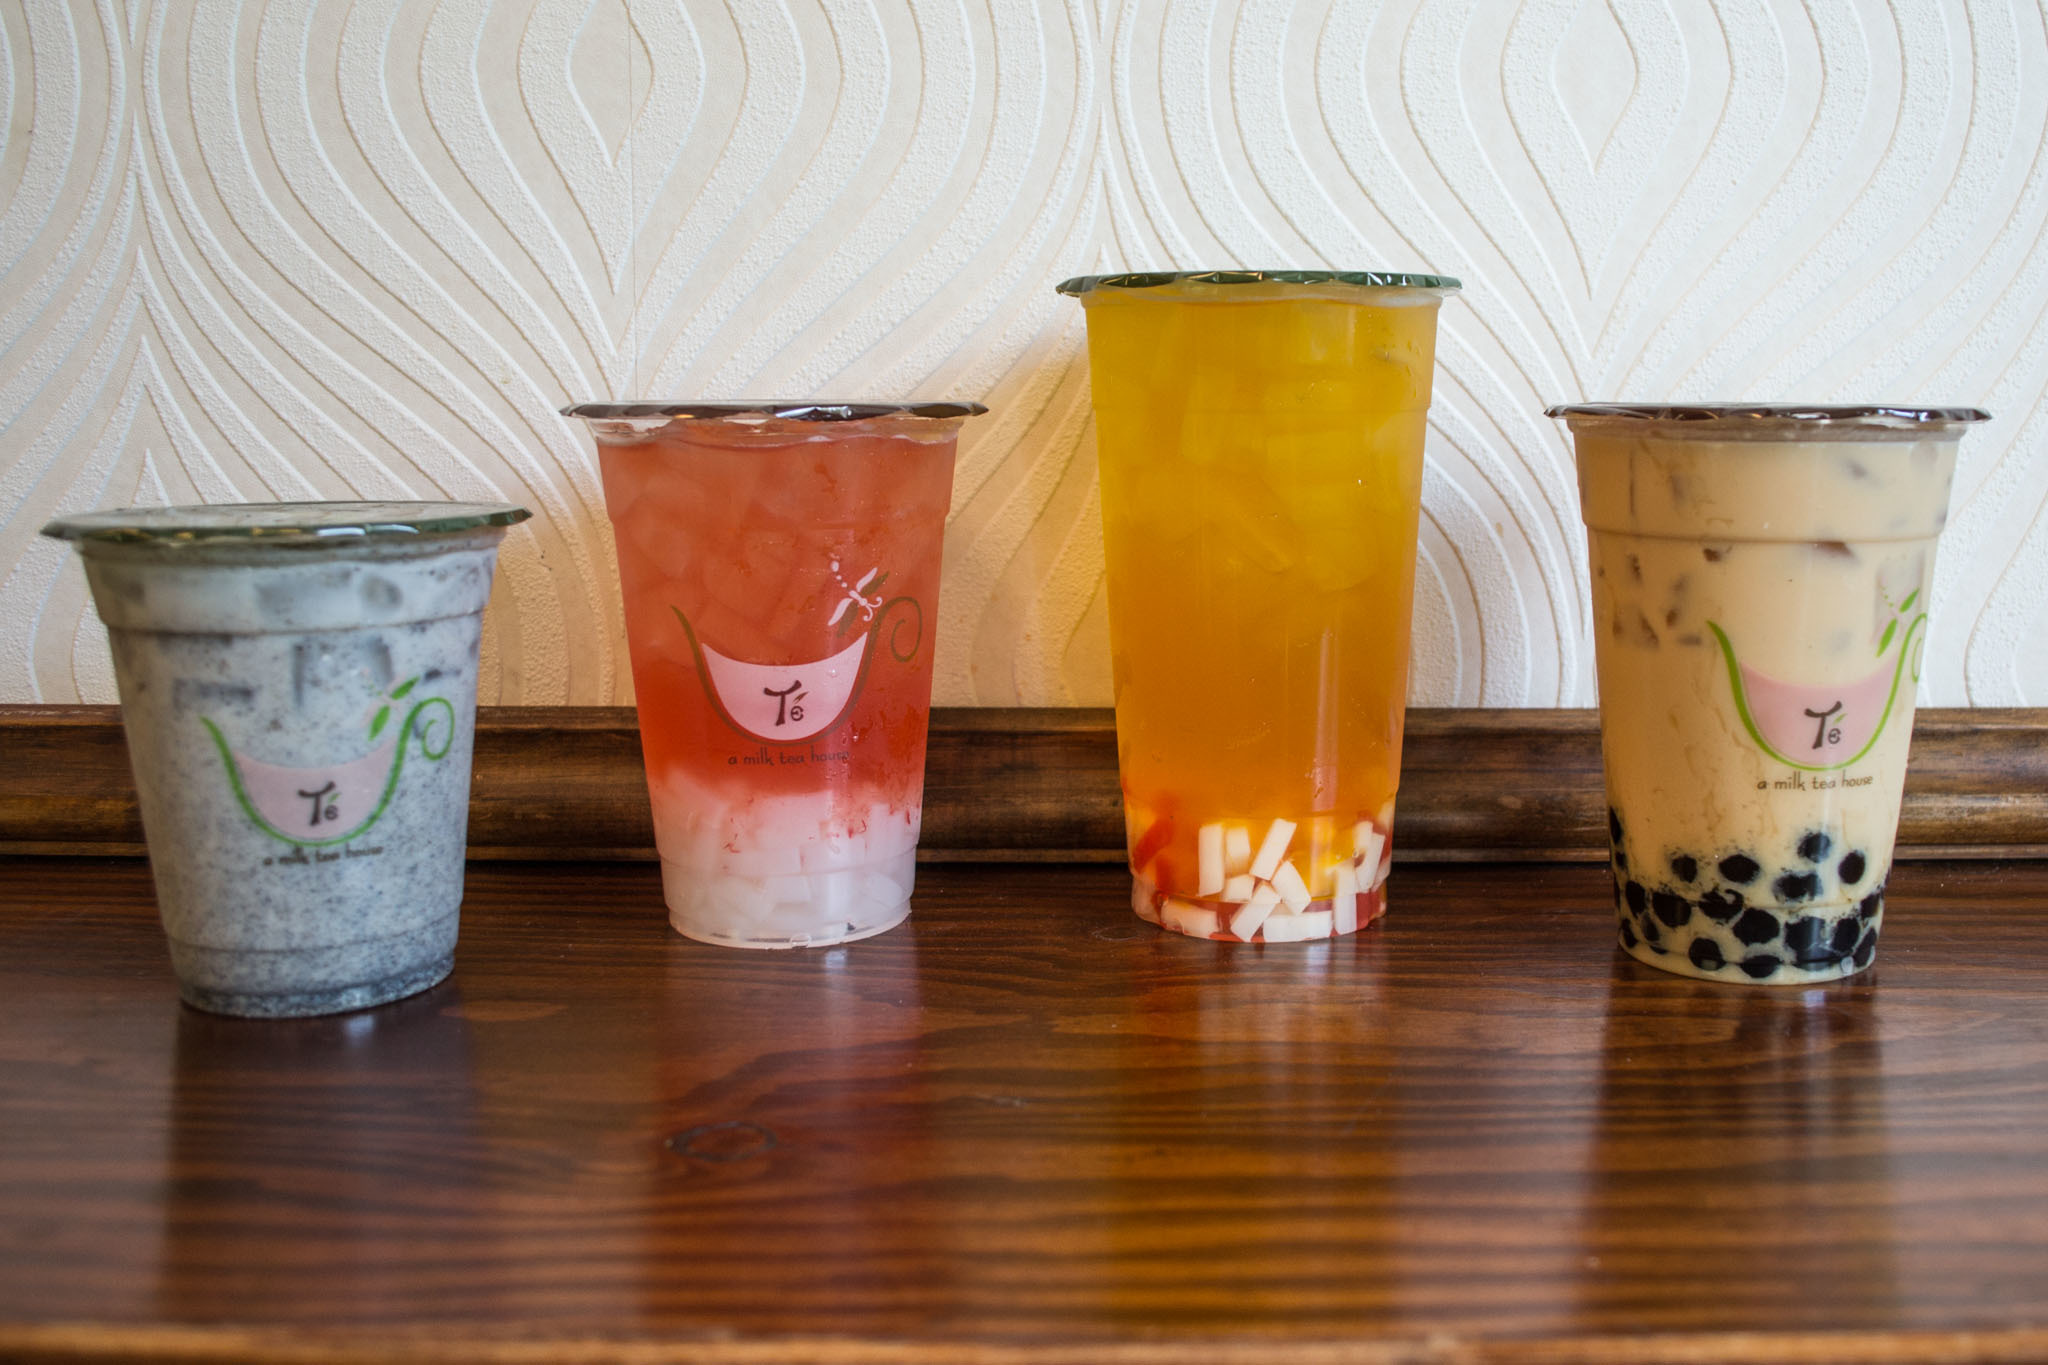 Bubble tea spots in Chicago for those addictive tapioca balls on british house, greek house, coconut house, asian house, breakfast house, curry house, mediterranean house, japanese house, cheese house, blueberry house, bubble waterfall, coffee house, bubble spa, bubble inside of house, bubble shed, bubble fusion,